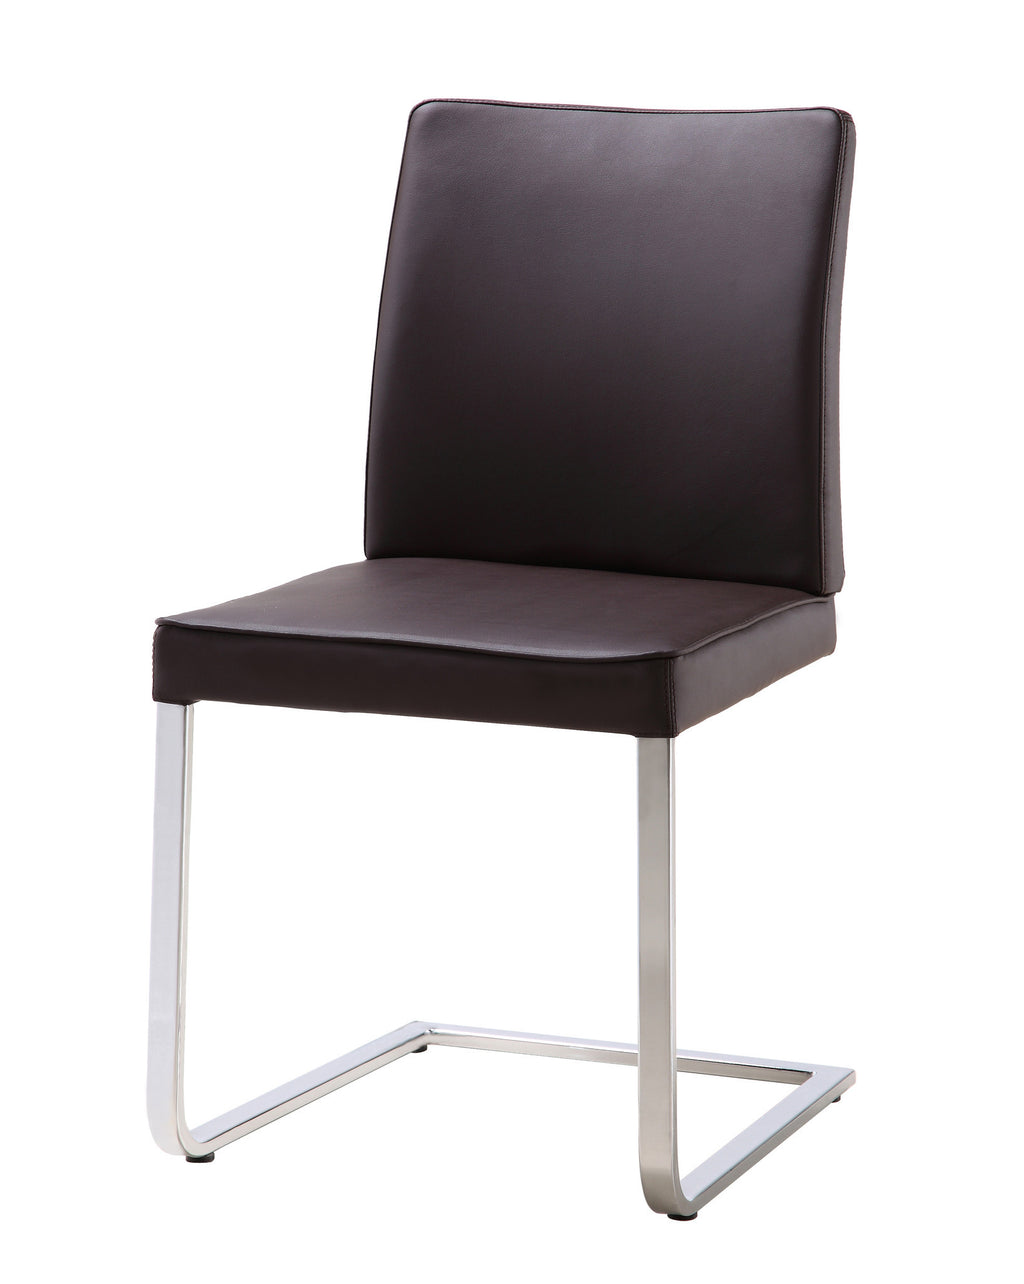 Ivy Dining Chair, Chocolate Faux Leather, Chrome frame